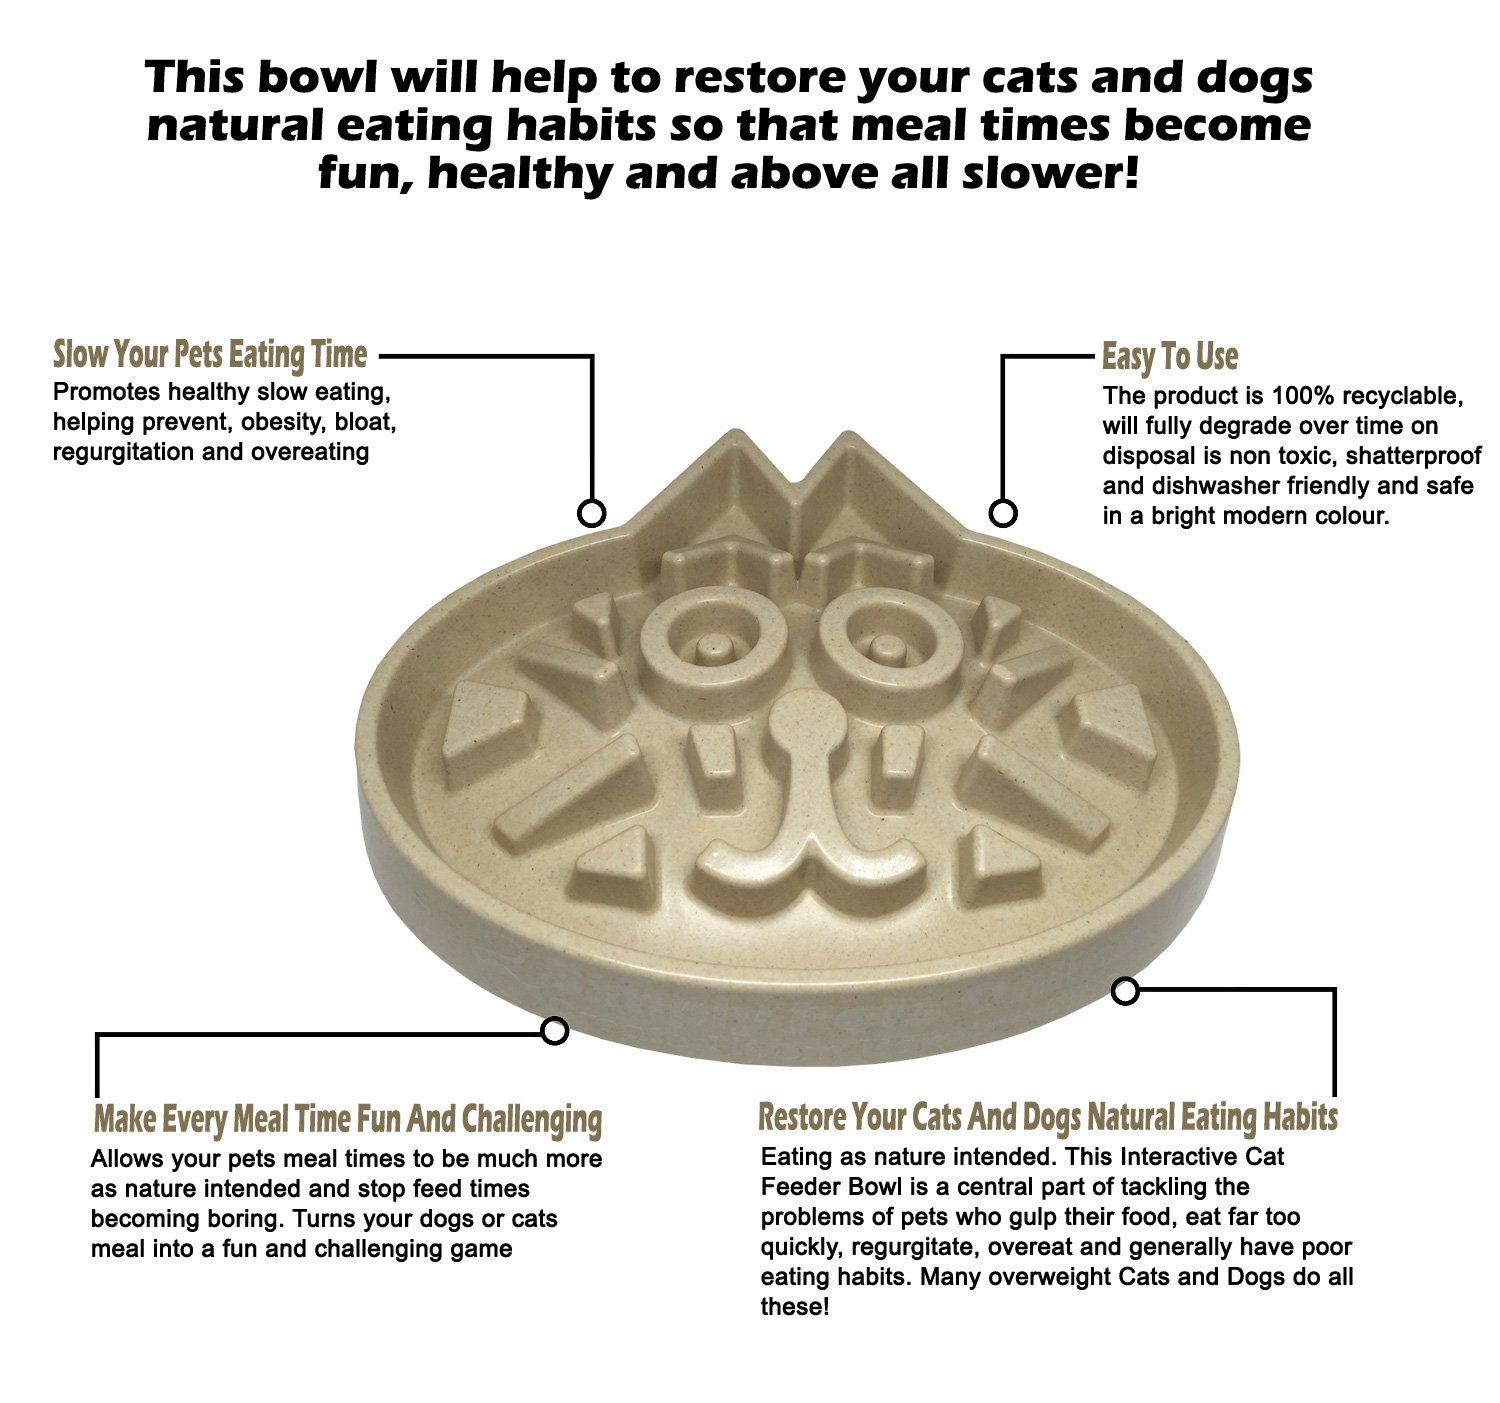 Large Slow Feed Cat Bowl | Medium Breed Dog Feed Bowl | Slow Feed Bowl for Pets - Slow Down Eating - Eco-Friendly Durable Non Toxic Bamboo Fibre- Designed by Veterinarians - Professional Design by Simply Pets Online